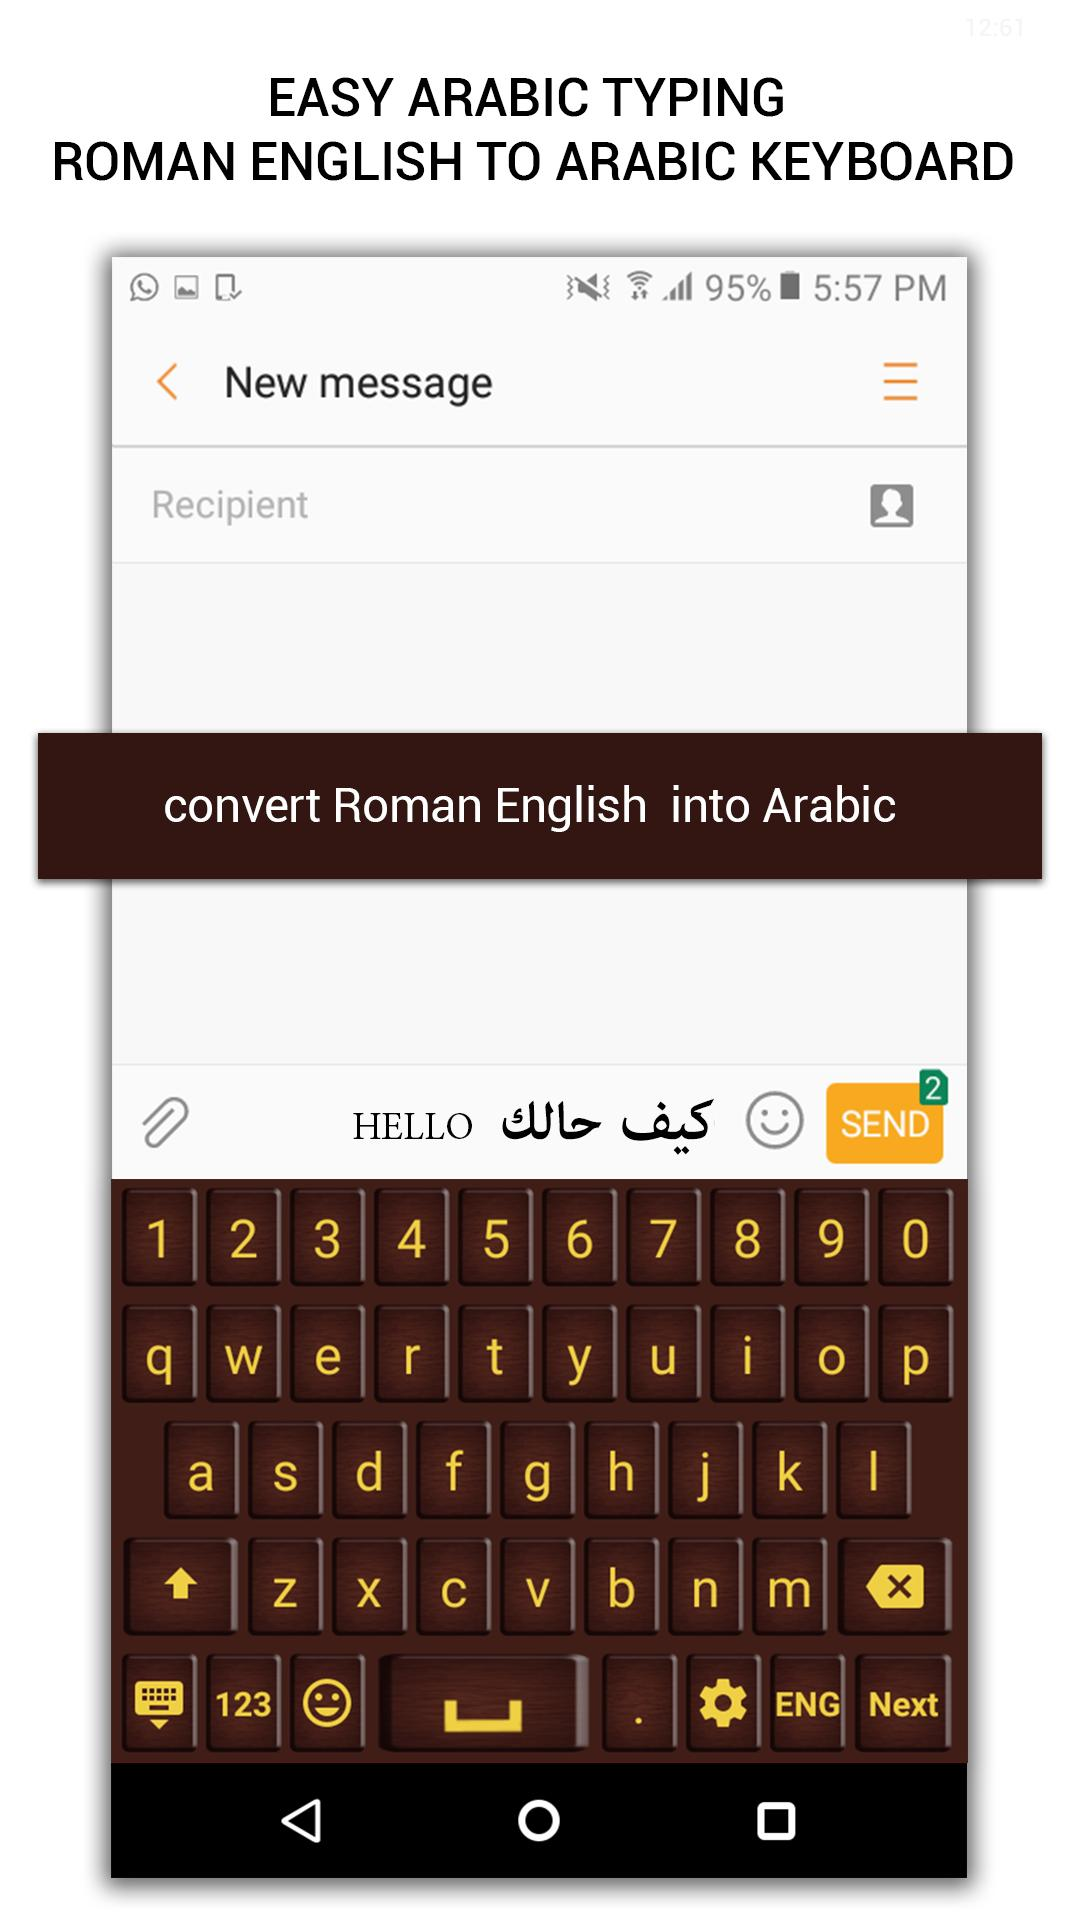 Arabic Translate Keyboard For Android Apk Download